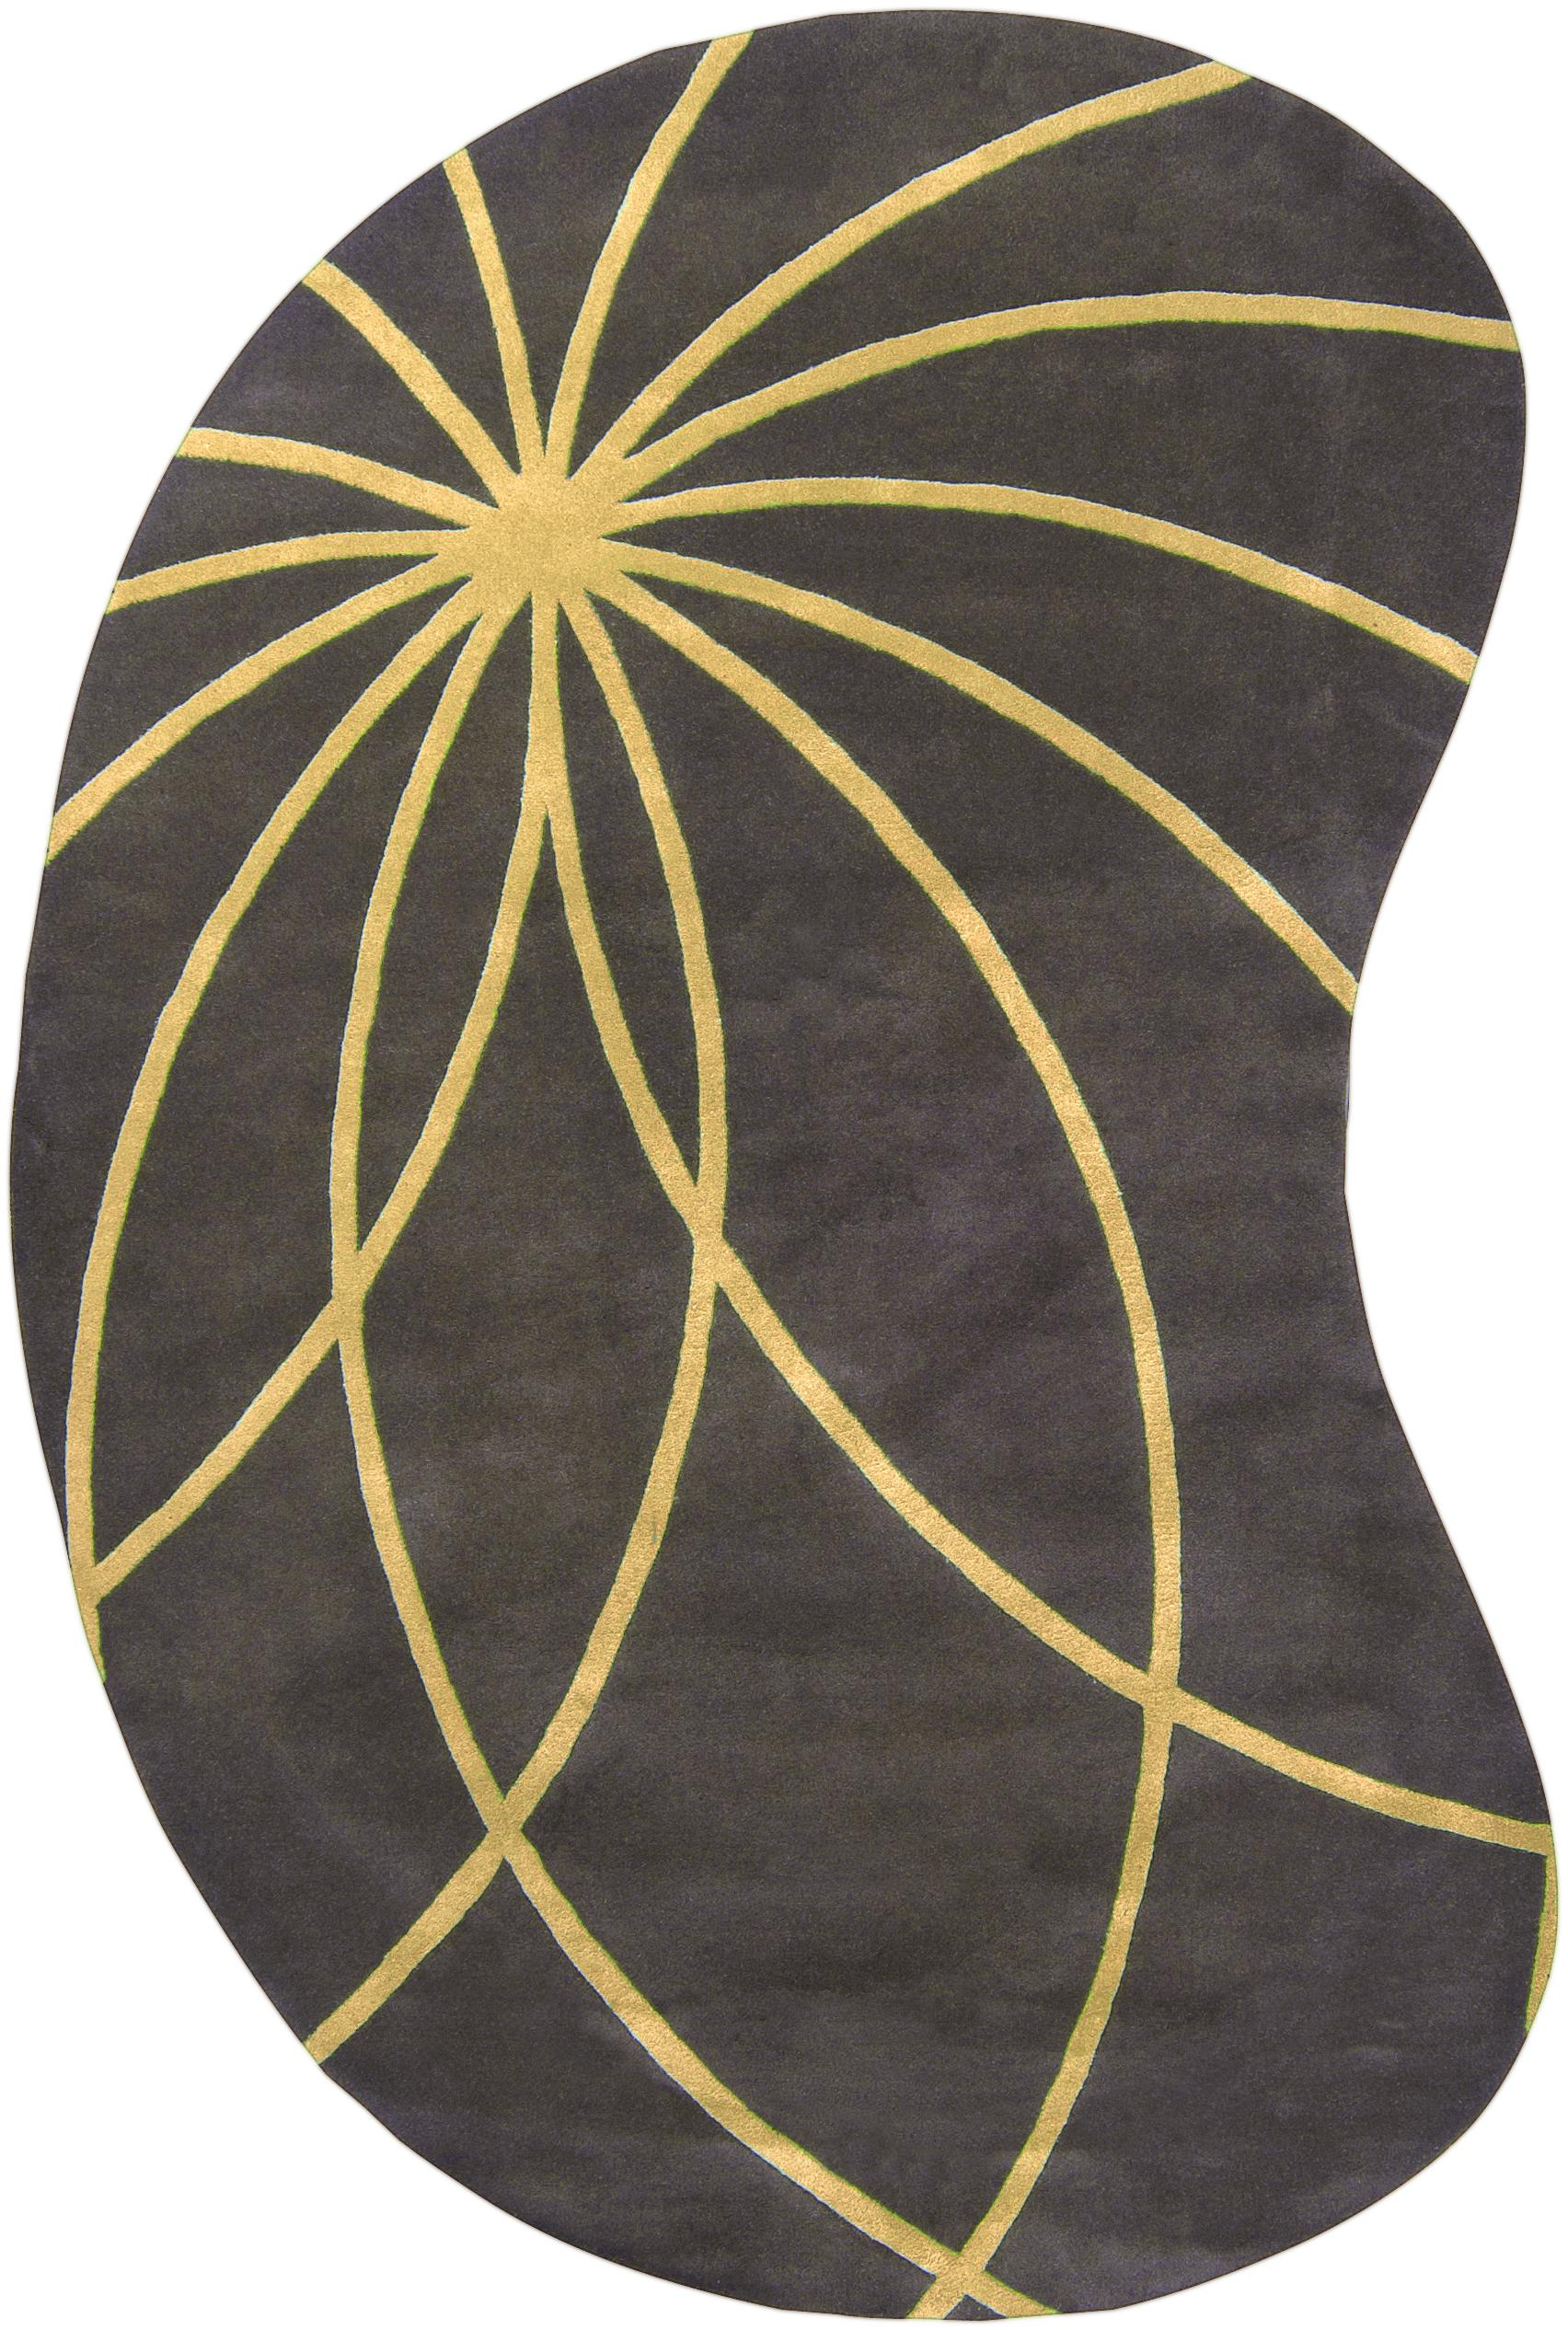 Surya Rugs Forum 6' x 9' Kidney - Item Number: FM7181-69KDNY